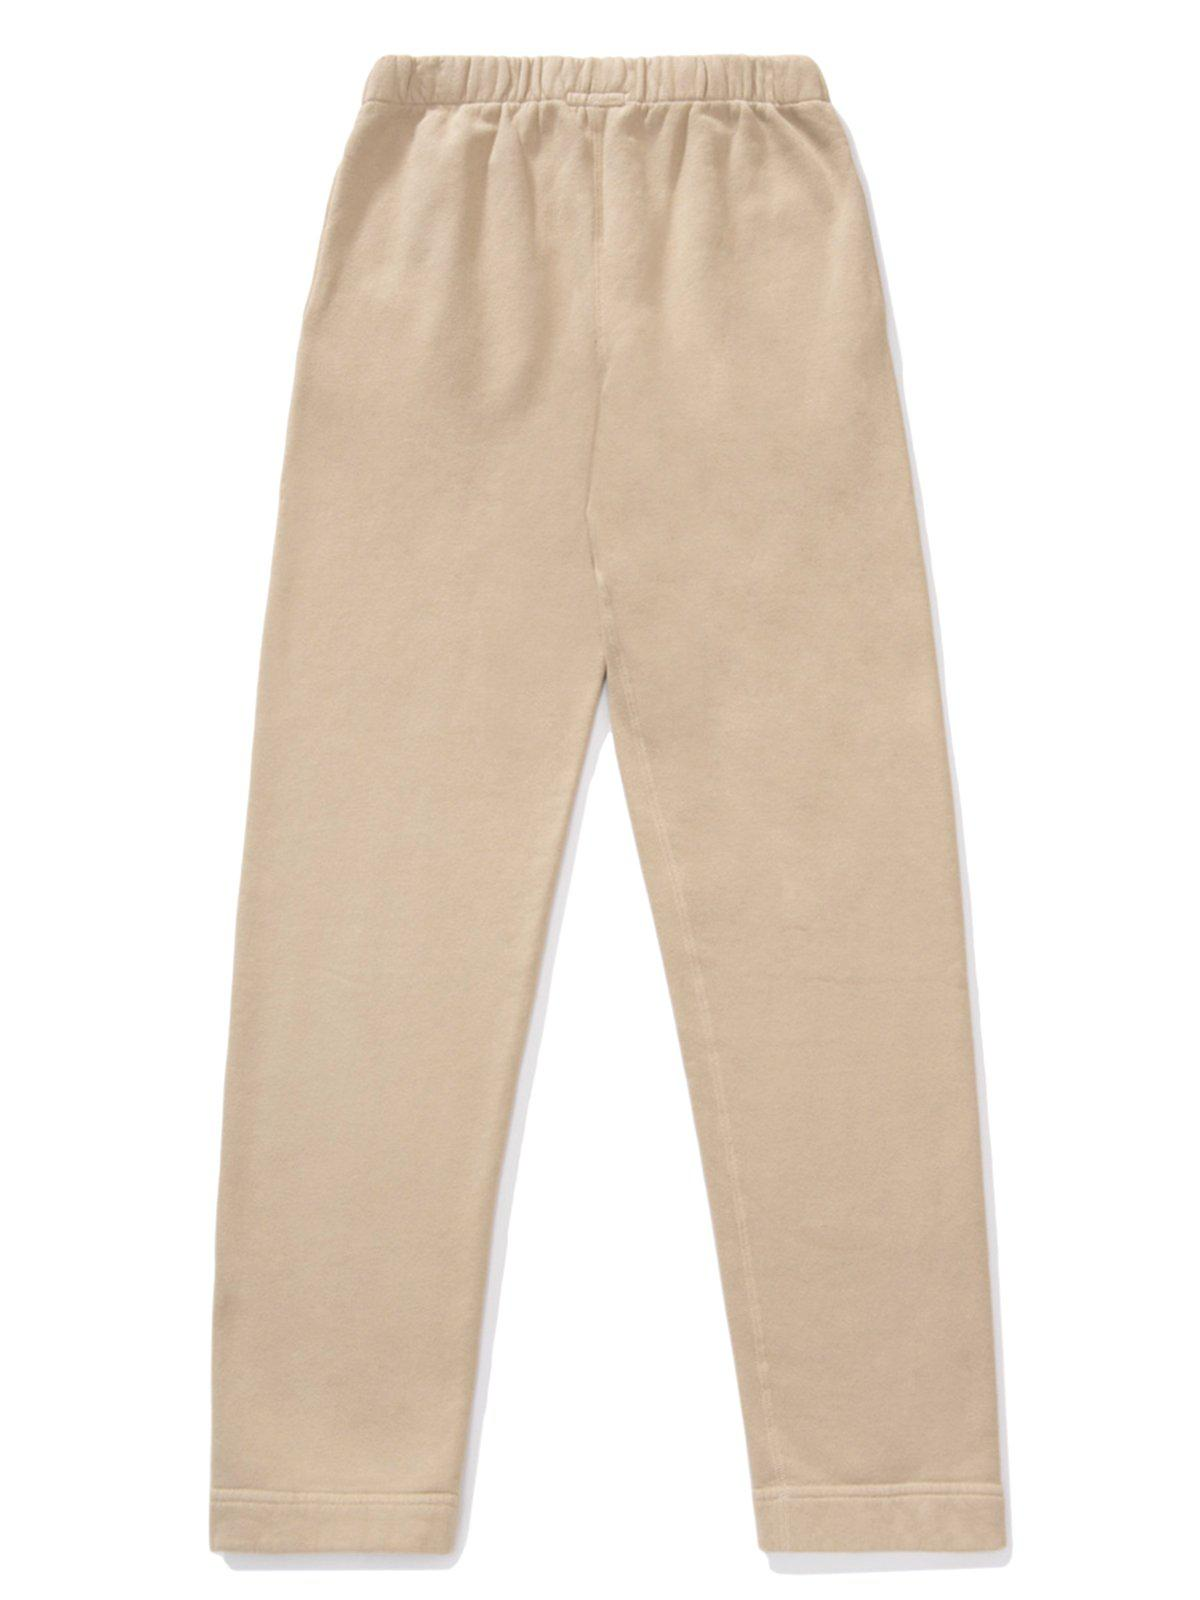 Lady White Co. Sweatpant Beige - MORE by Morello Indonesia